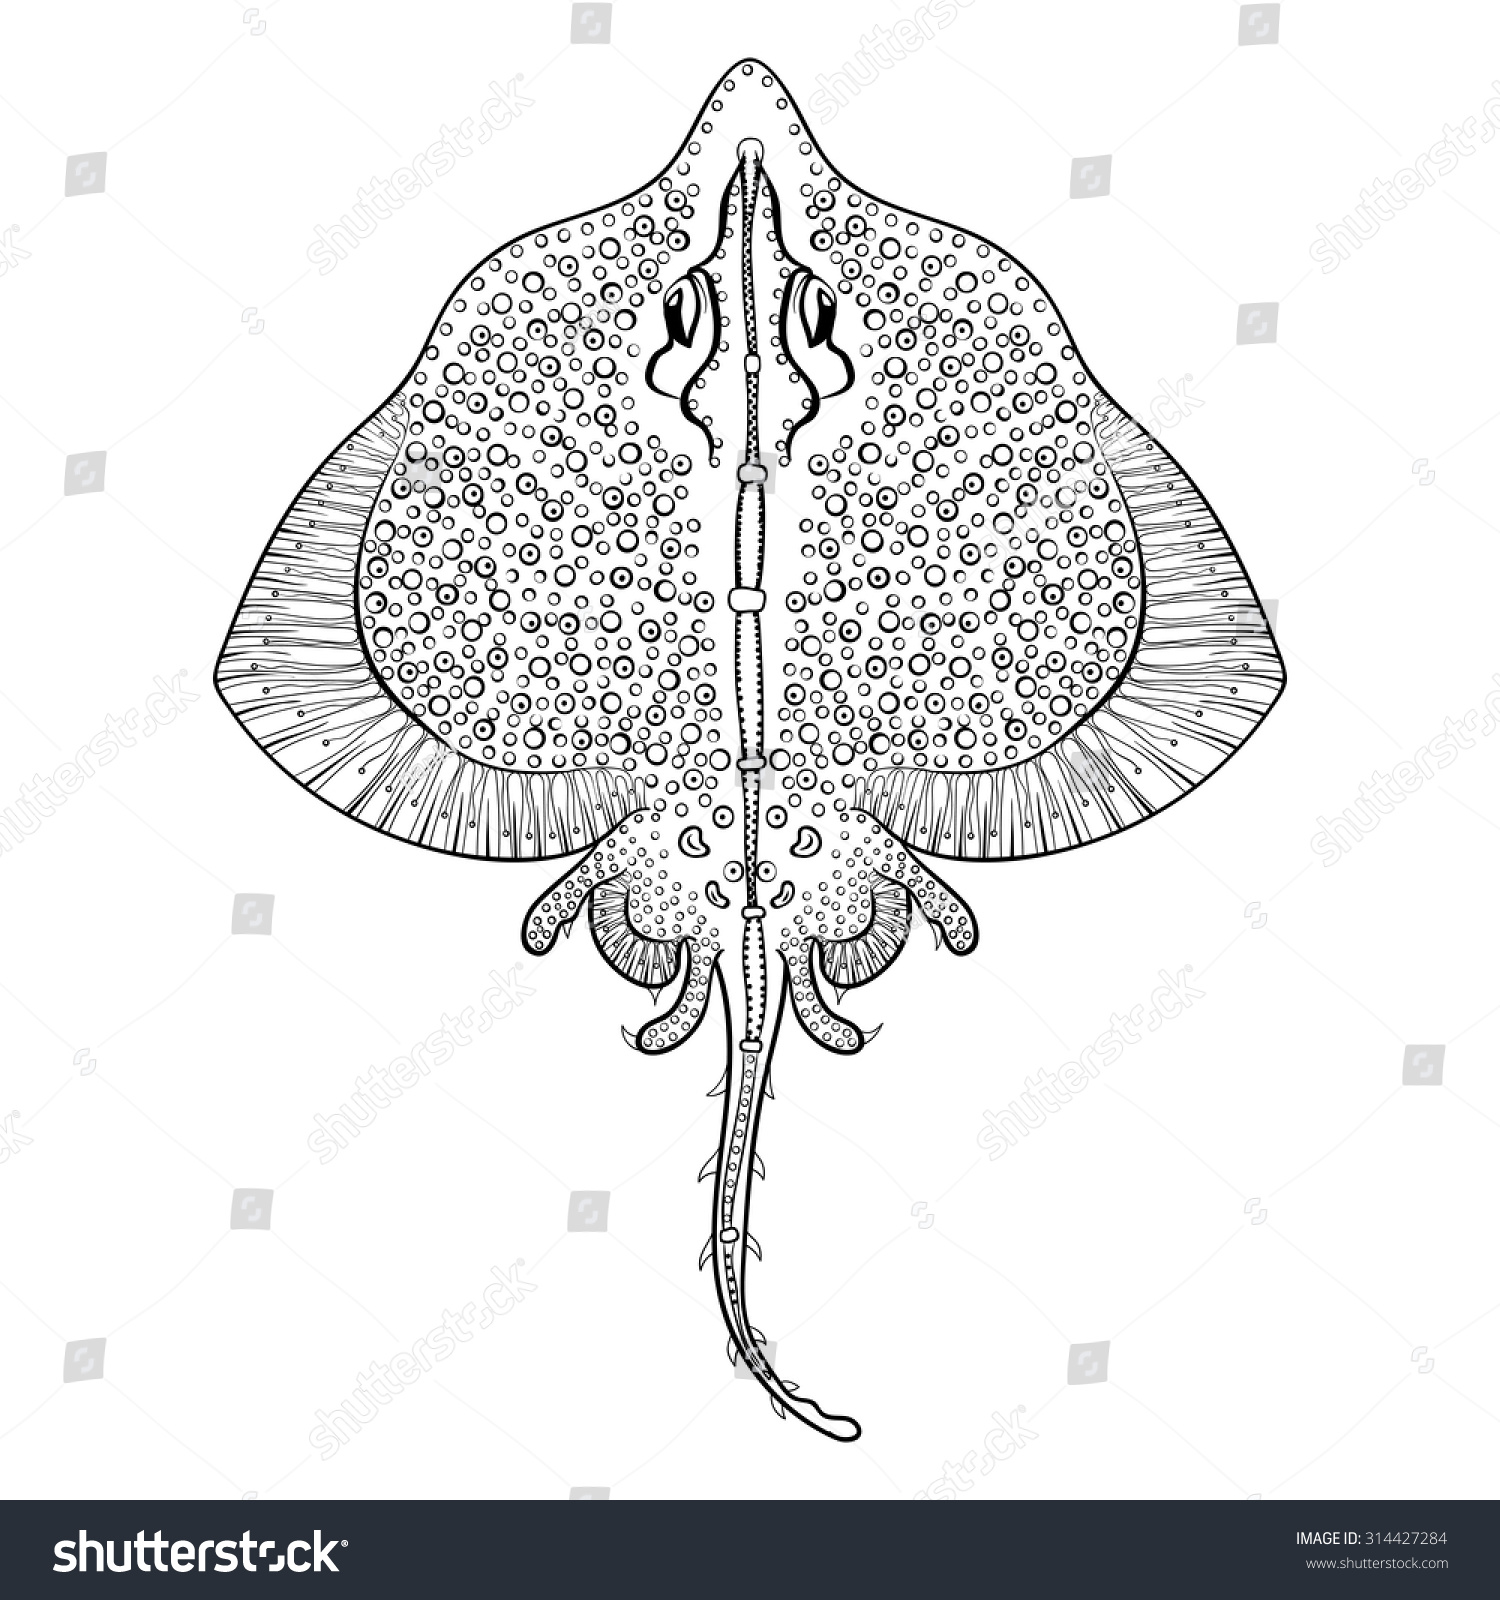 Stingray Coloring Page #6